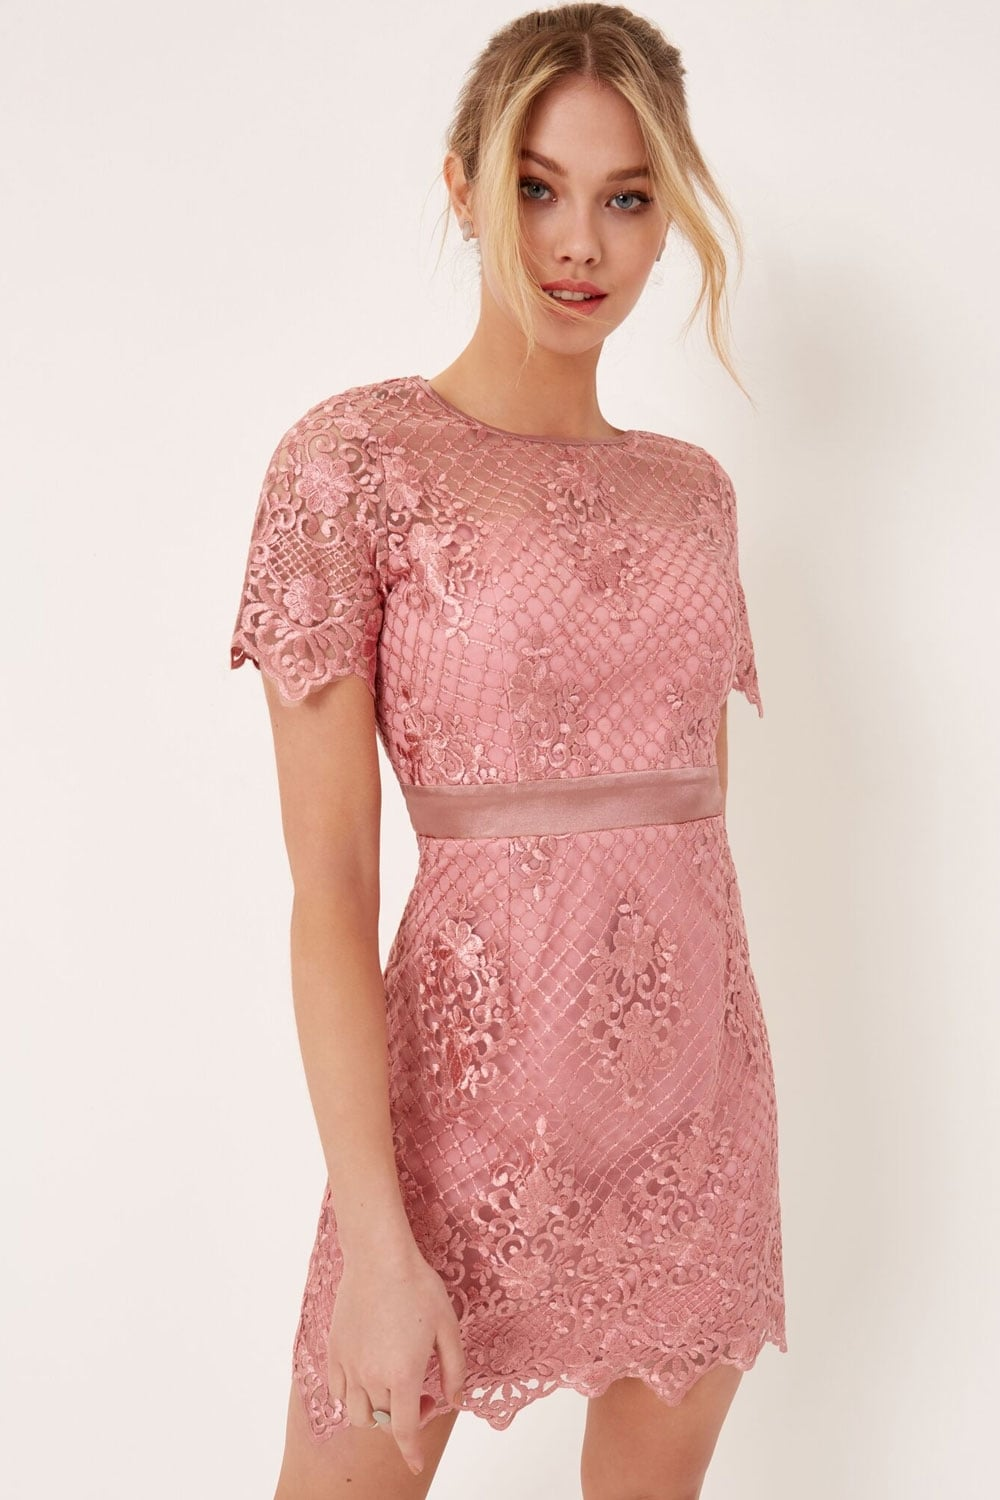 Girls on Film Pink Lace Mini Dress - Girls On Film from ...